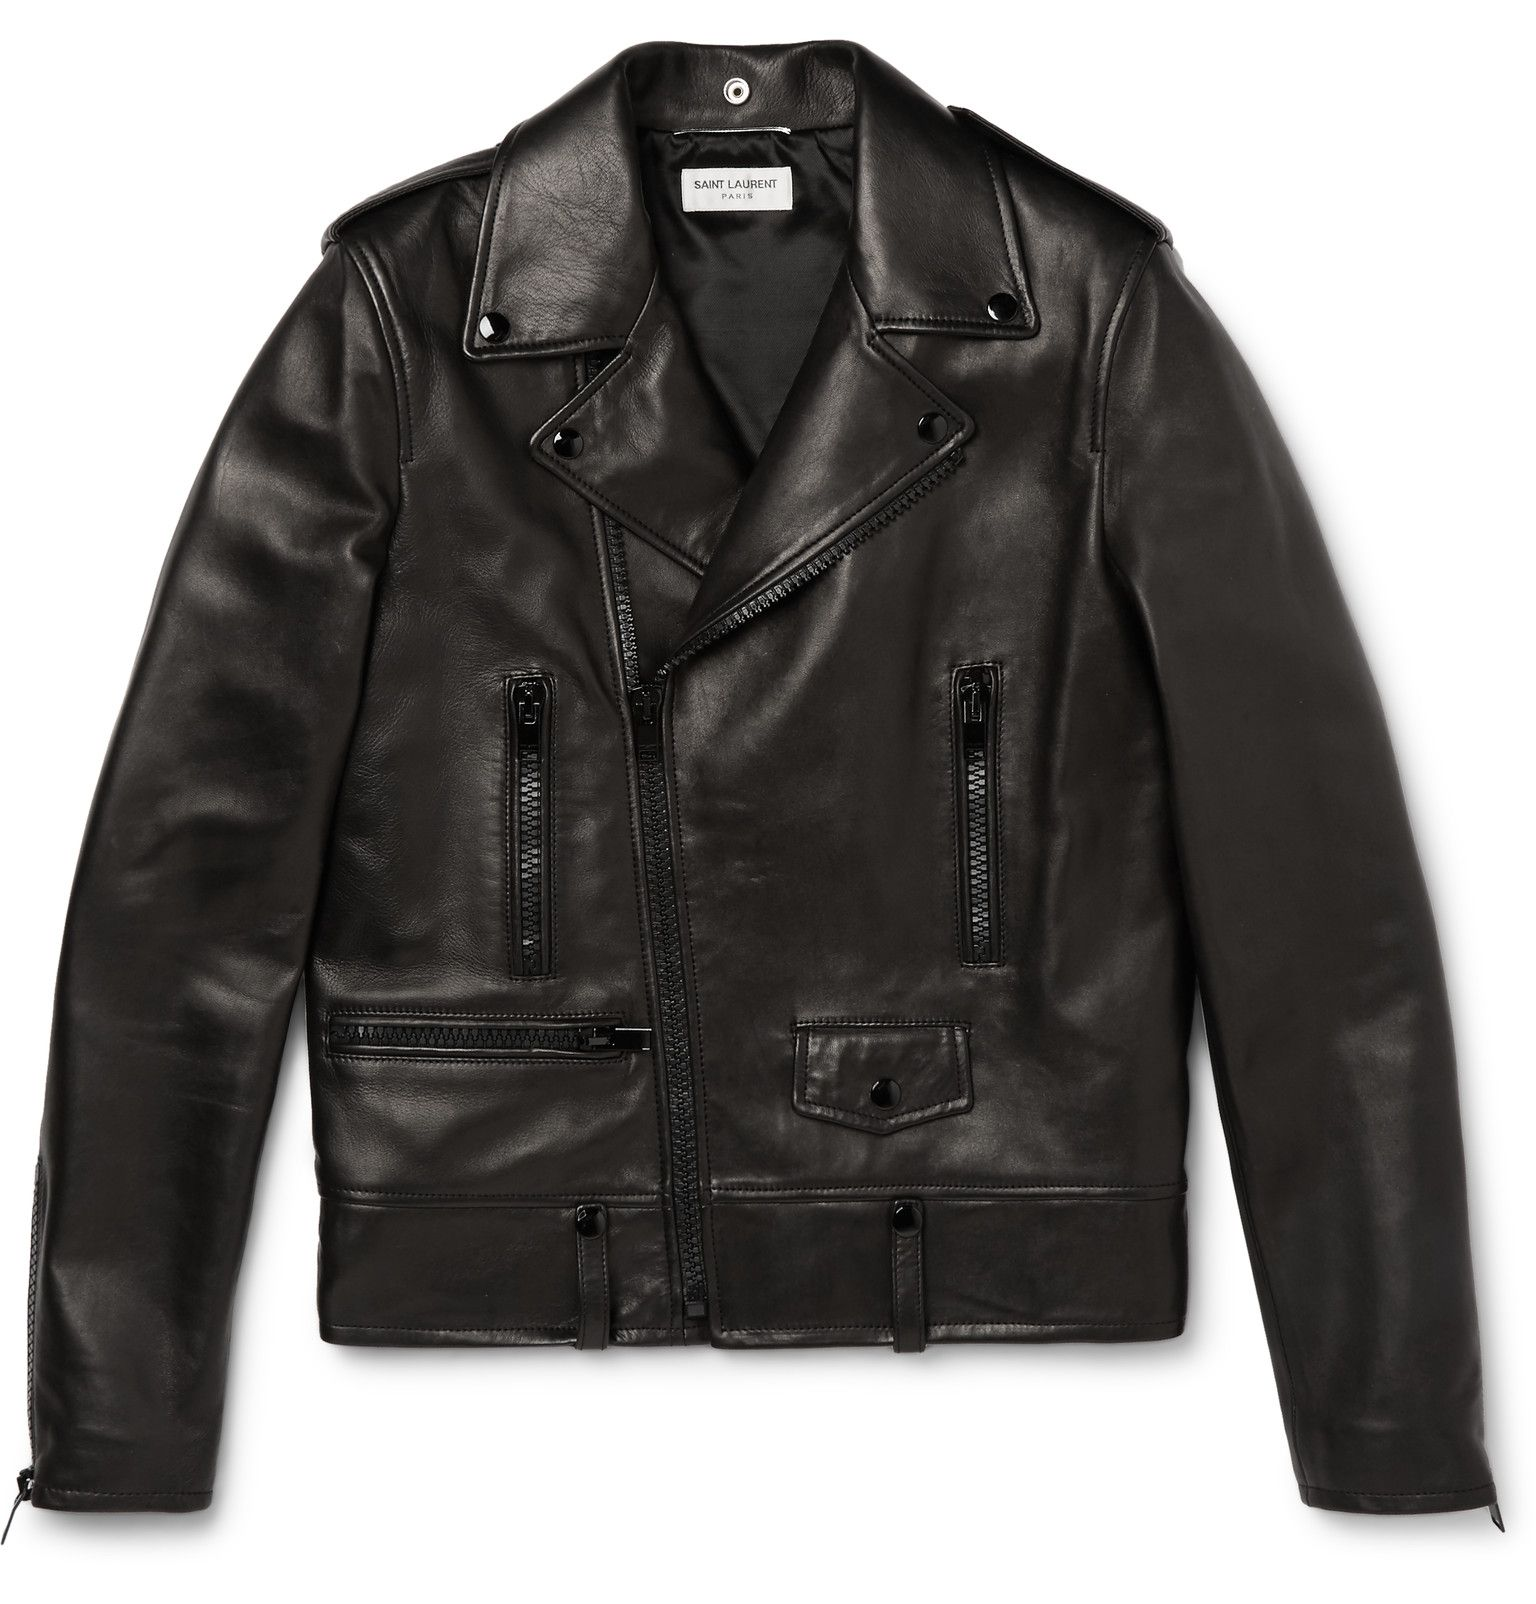 With a design as iconic as the biker jacket, subtle details make all the difference. This slim-fit leather version by Saint Laurent eschews the expected gleaming silver hardware for tonal zip and snap fastenings - the result is sleek and contemporary. Wear yours with a striped sweater and trim trousers at the weekend.